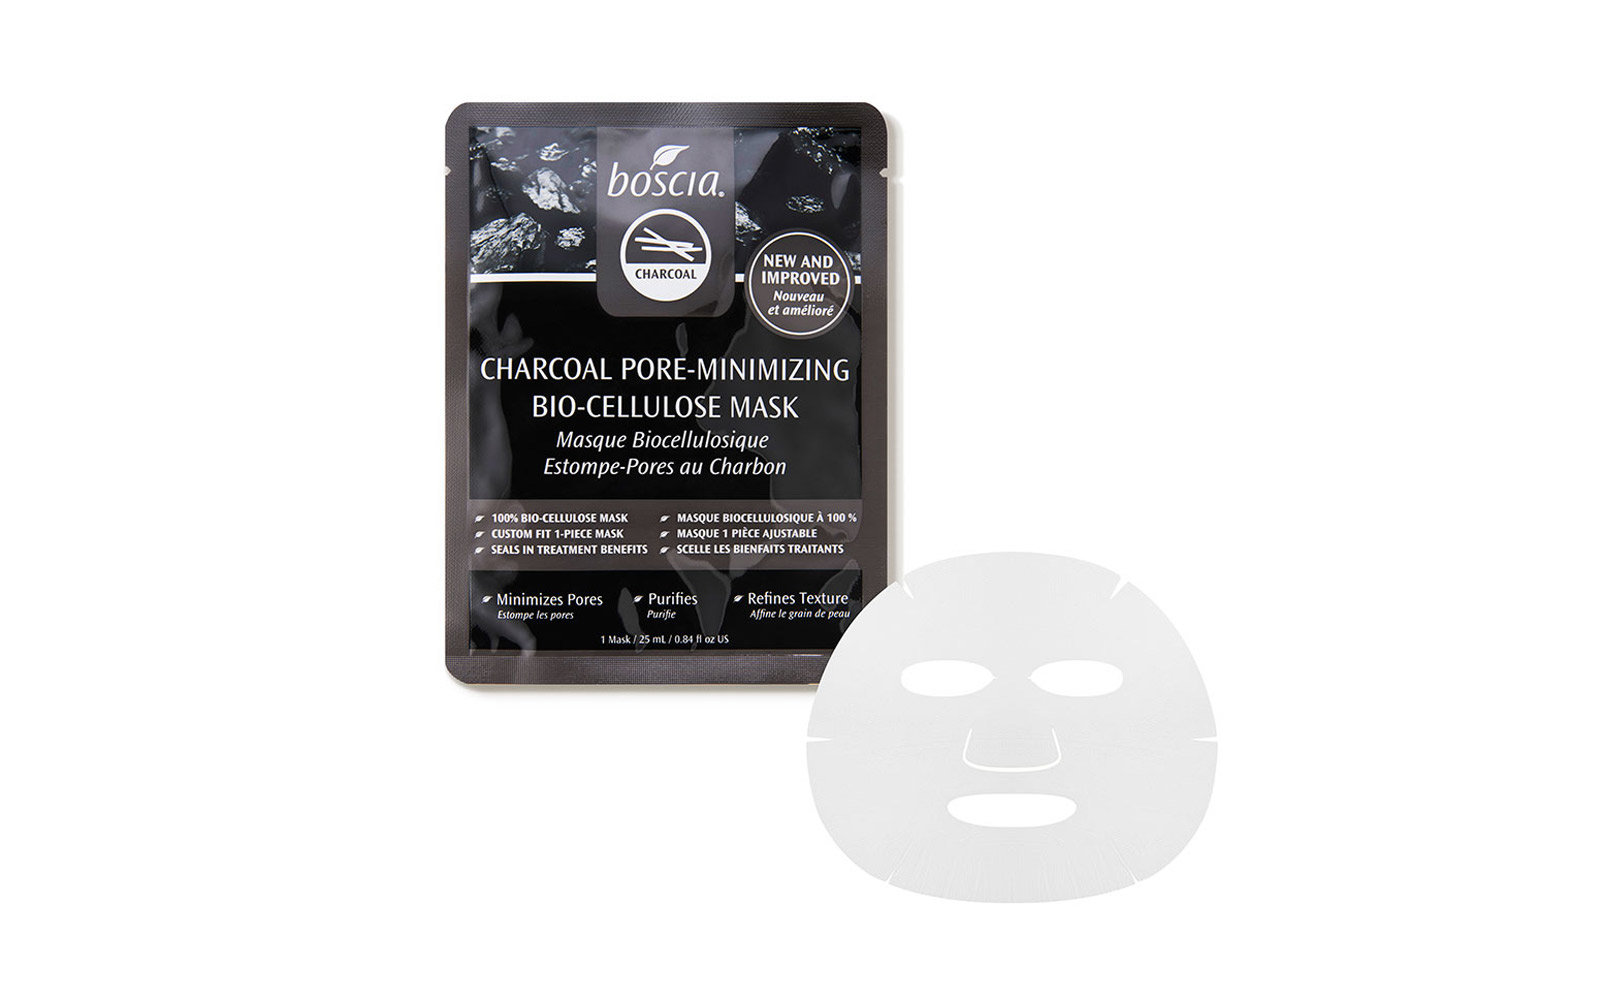 boscia charcoal sheet mask